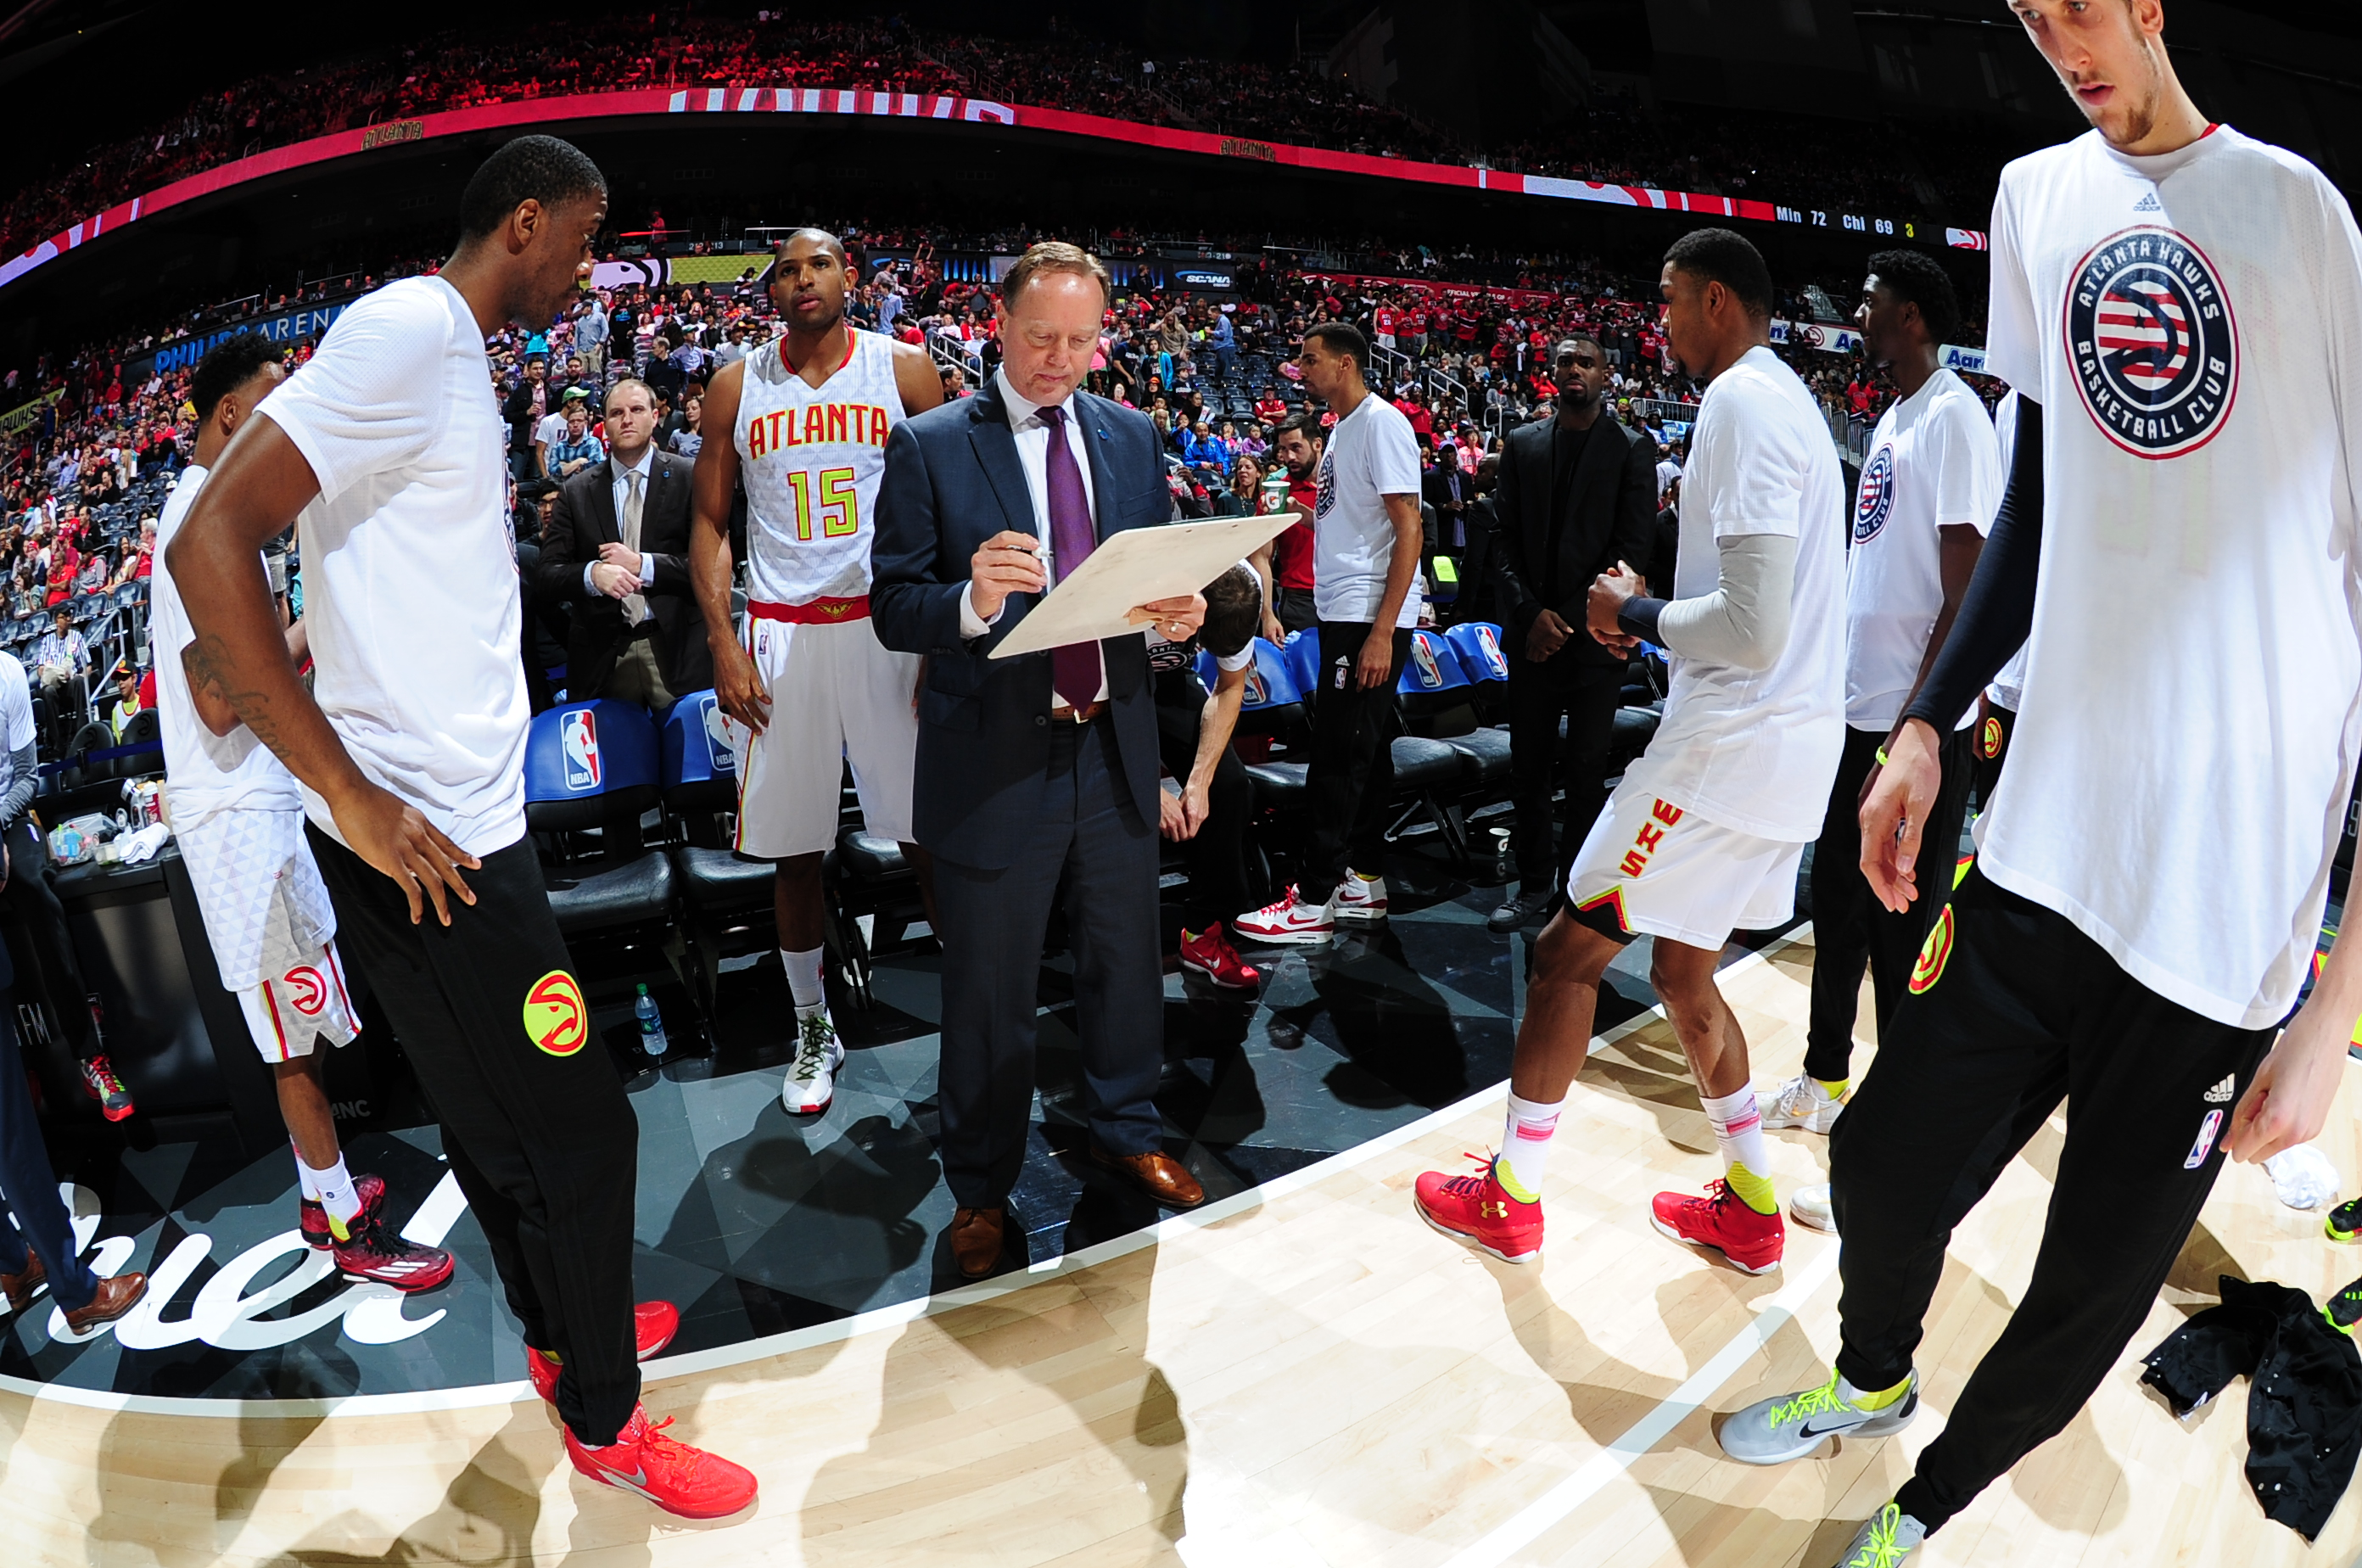 ATLANTA, GA - NOVEMBER 7:  Mike Budenholzer of the Atlanta Hawks prepares for the game against the Indiana Pacers on November 7, 2015 at Philips Arena in Atlanta, Georgia.  (Photo by Scott Cunningham/NBAE via Getty Images)